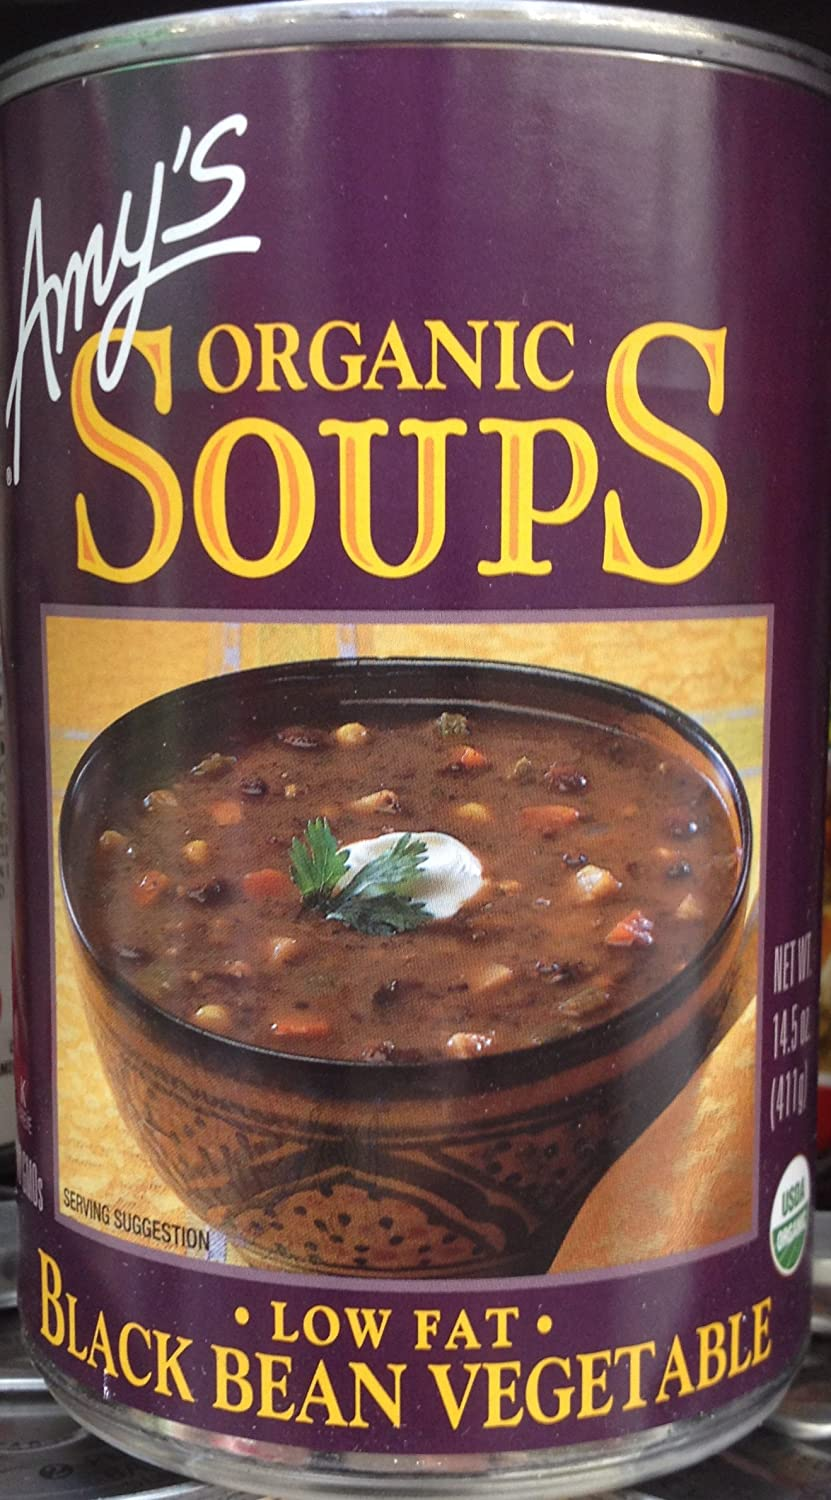 Amy's Organic Soups Black Bean Beauty products Vegetable Can 8 14.5oz Pack Phoenix Mall of